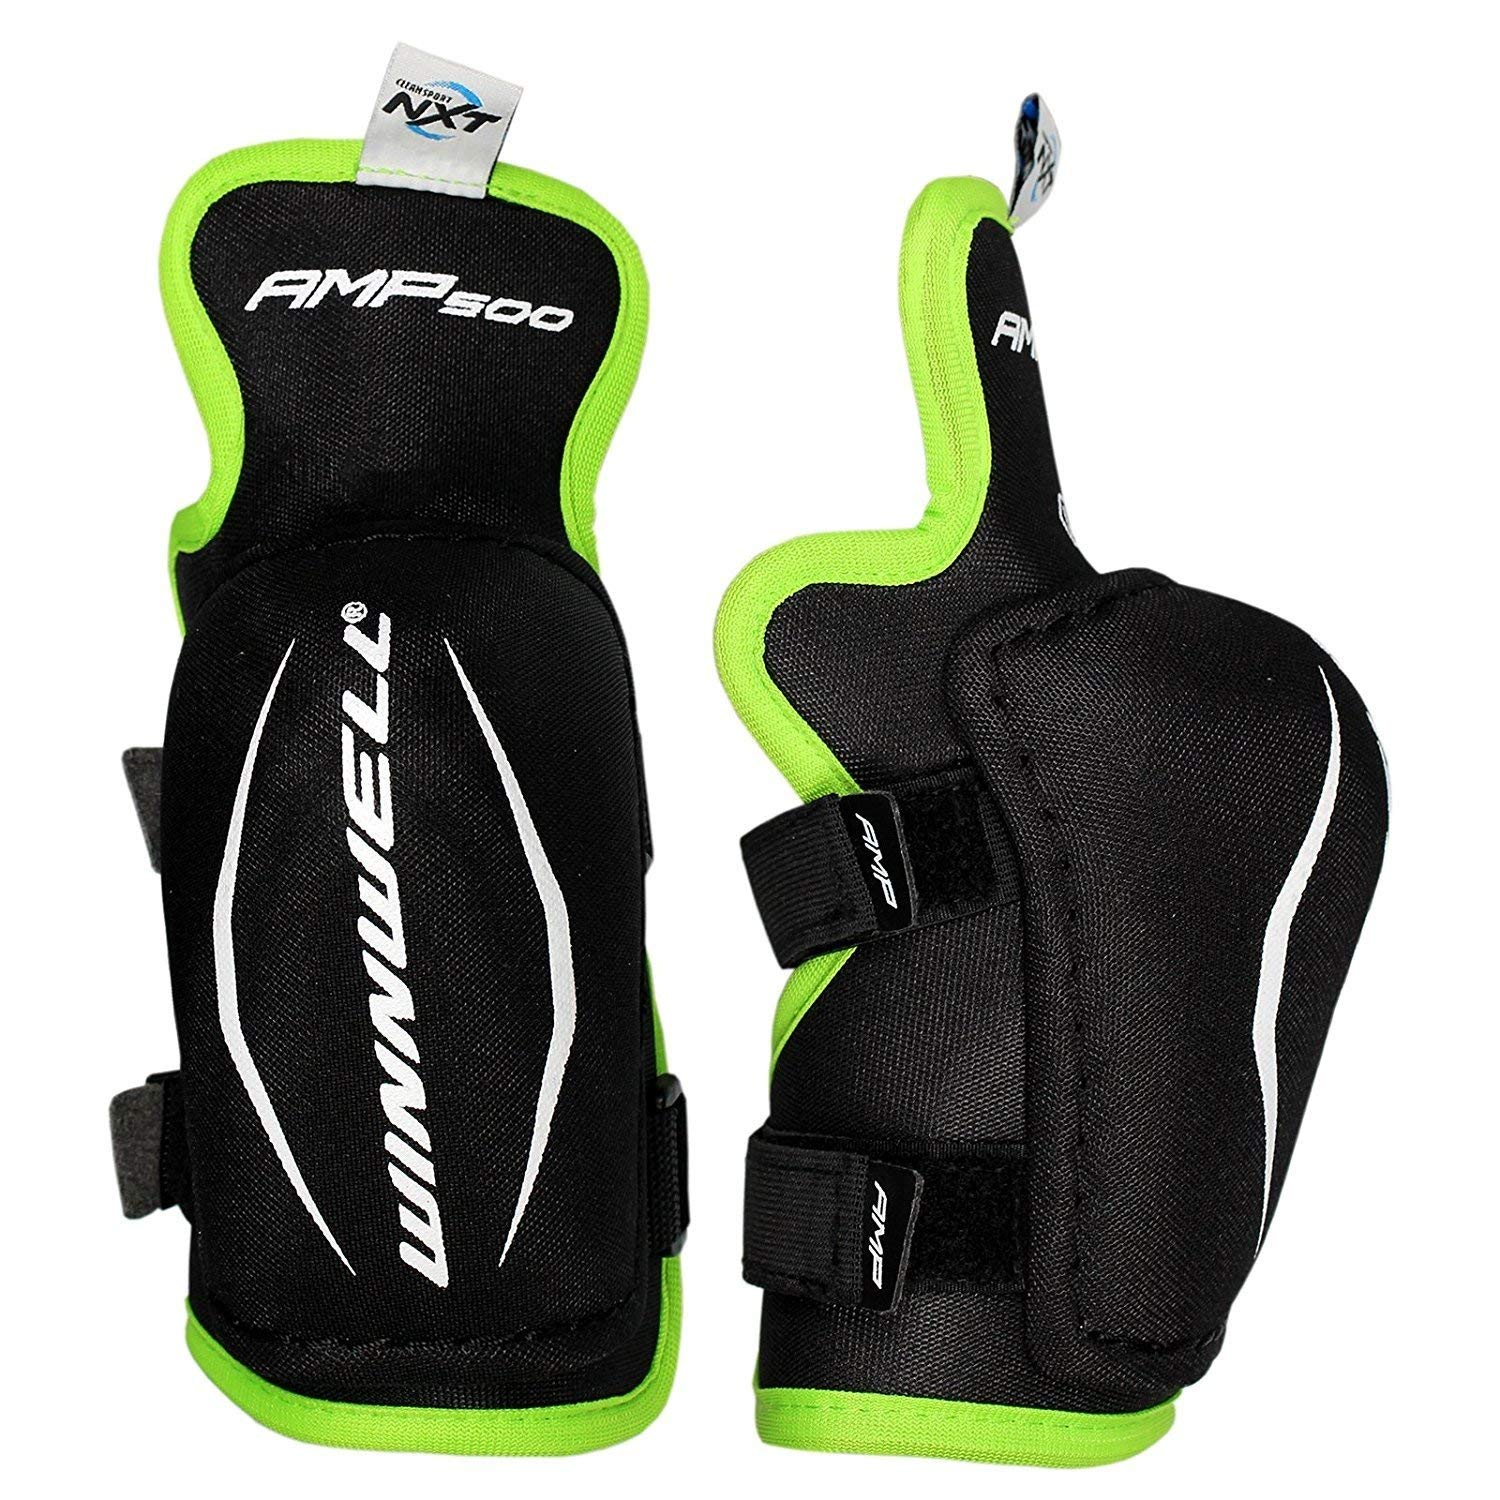 Cheap Best Hockey Pads Find Best Hockey Pads Deals On Line At